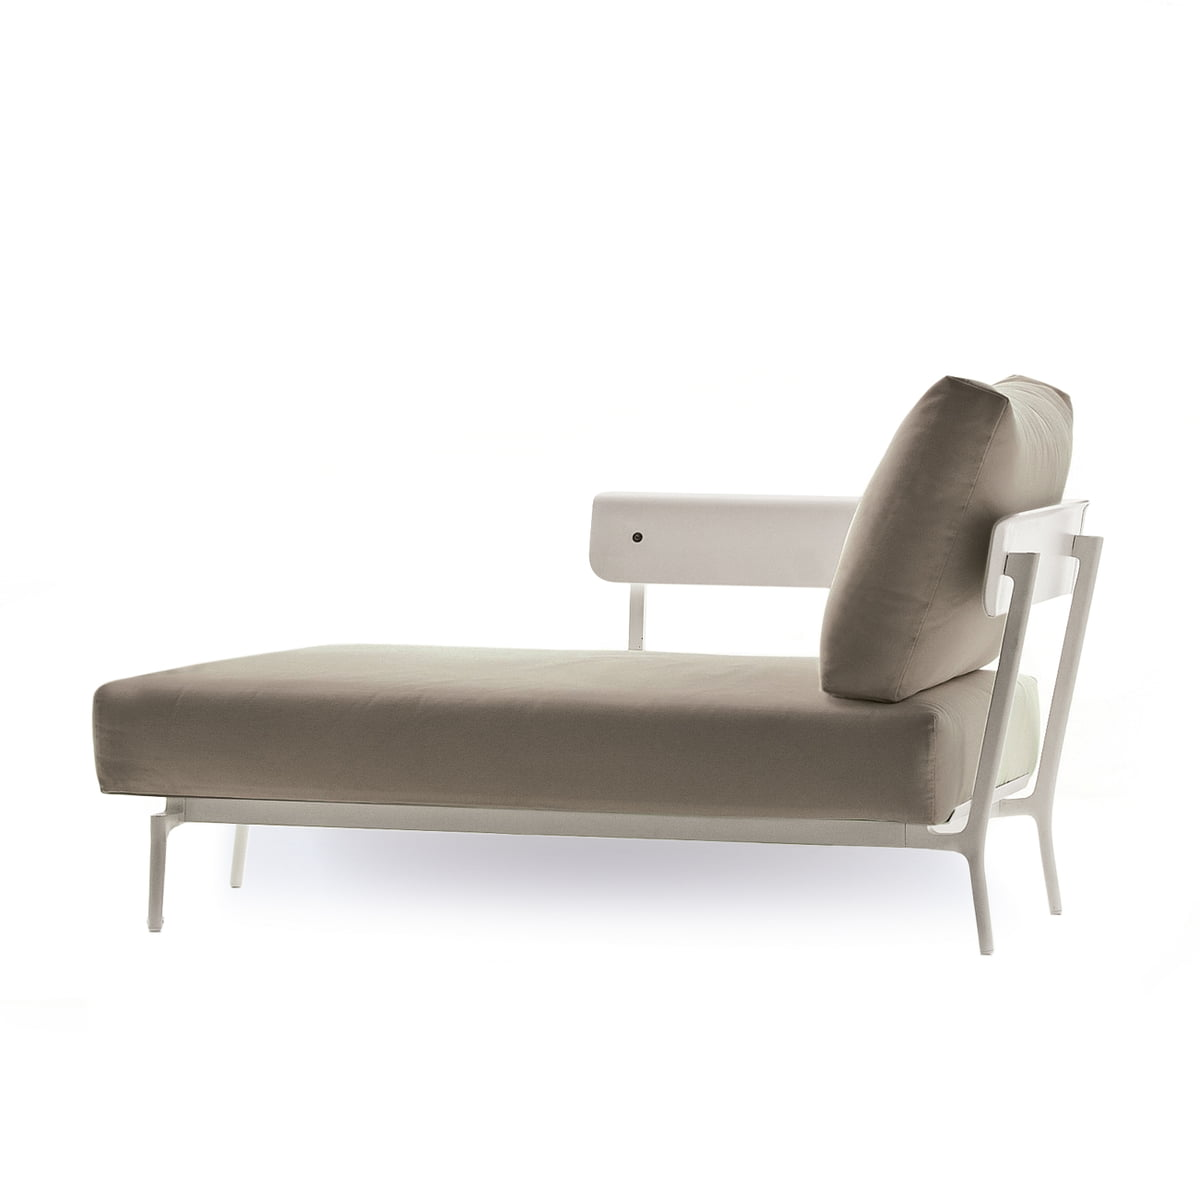 The aikana chaise longue by fast in the shop for Chaise longue torino